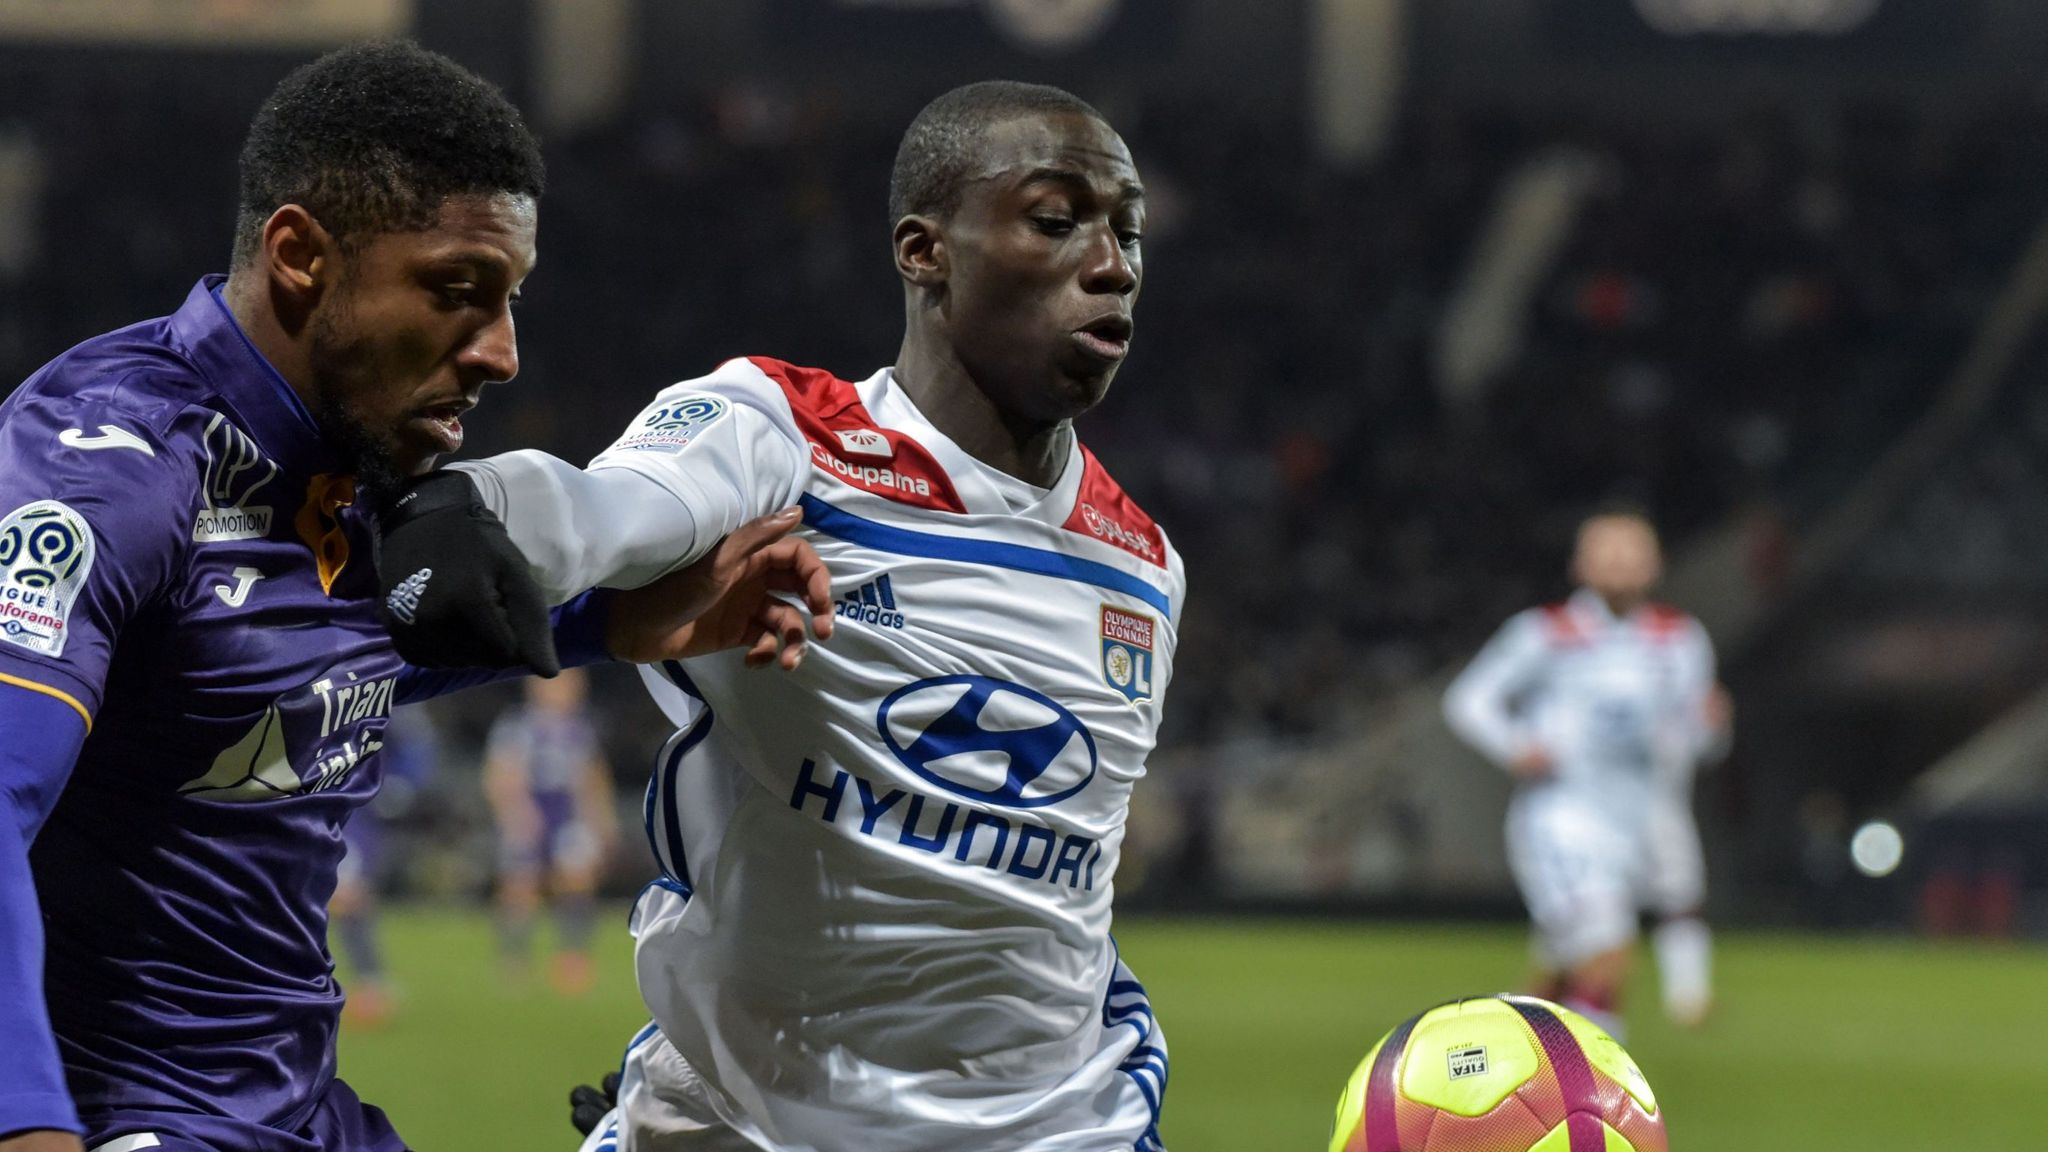 Real Madrid sign Ferland Mendy from Lyon Football News Sky Sports 2048x1152